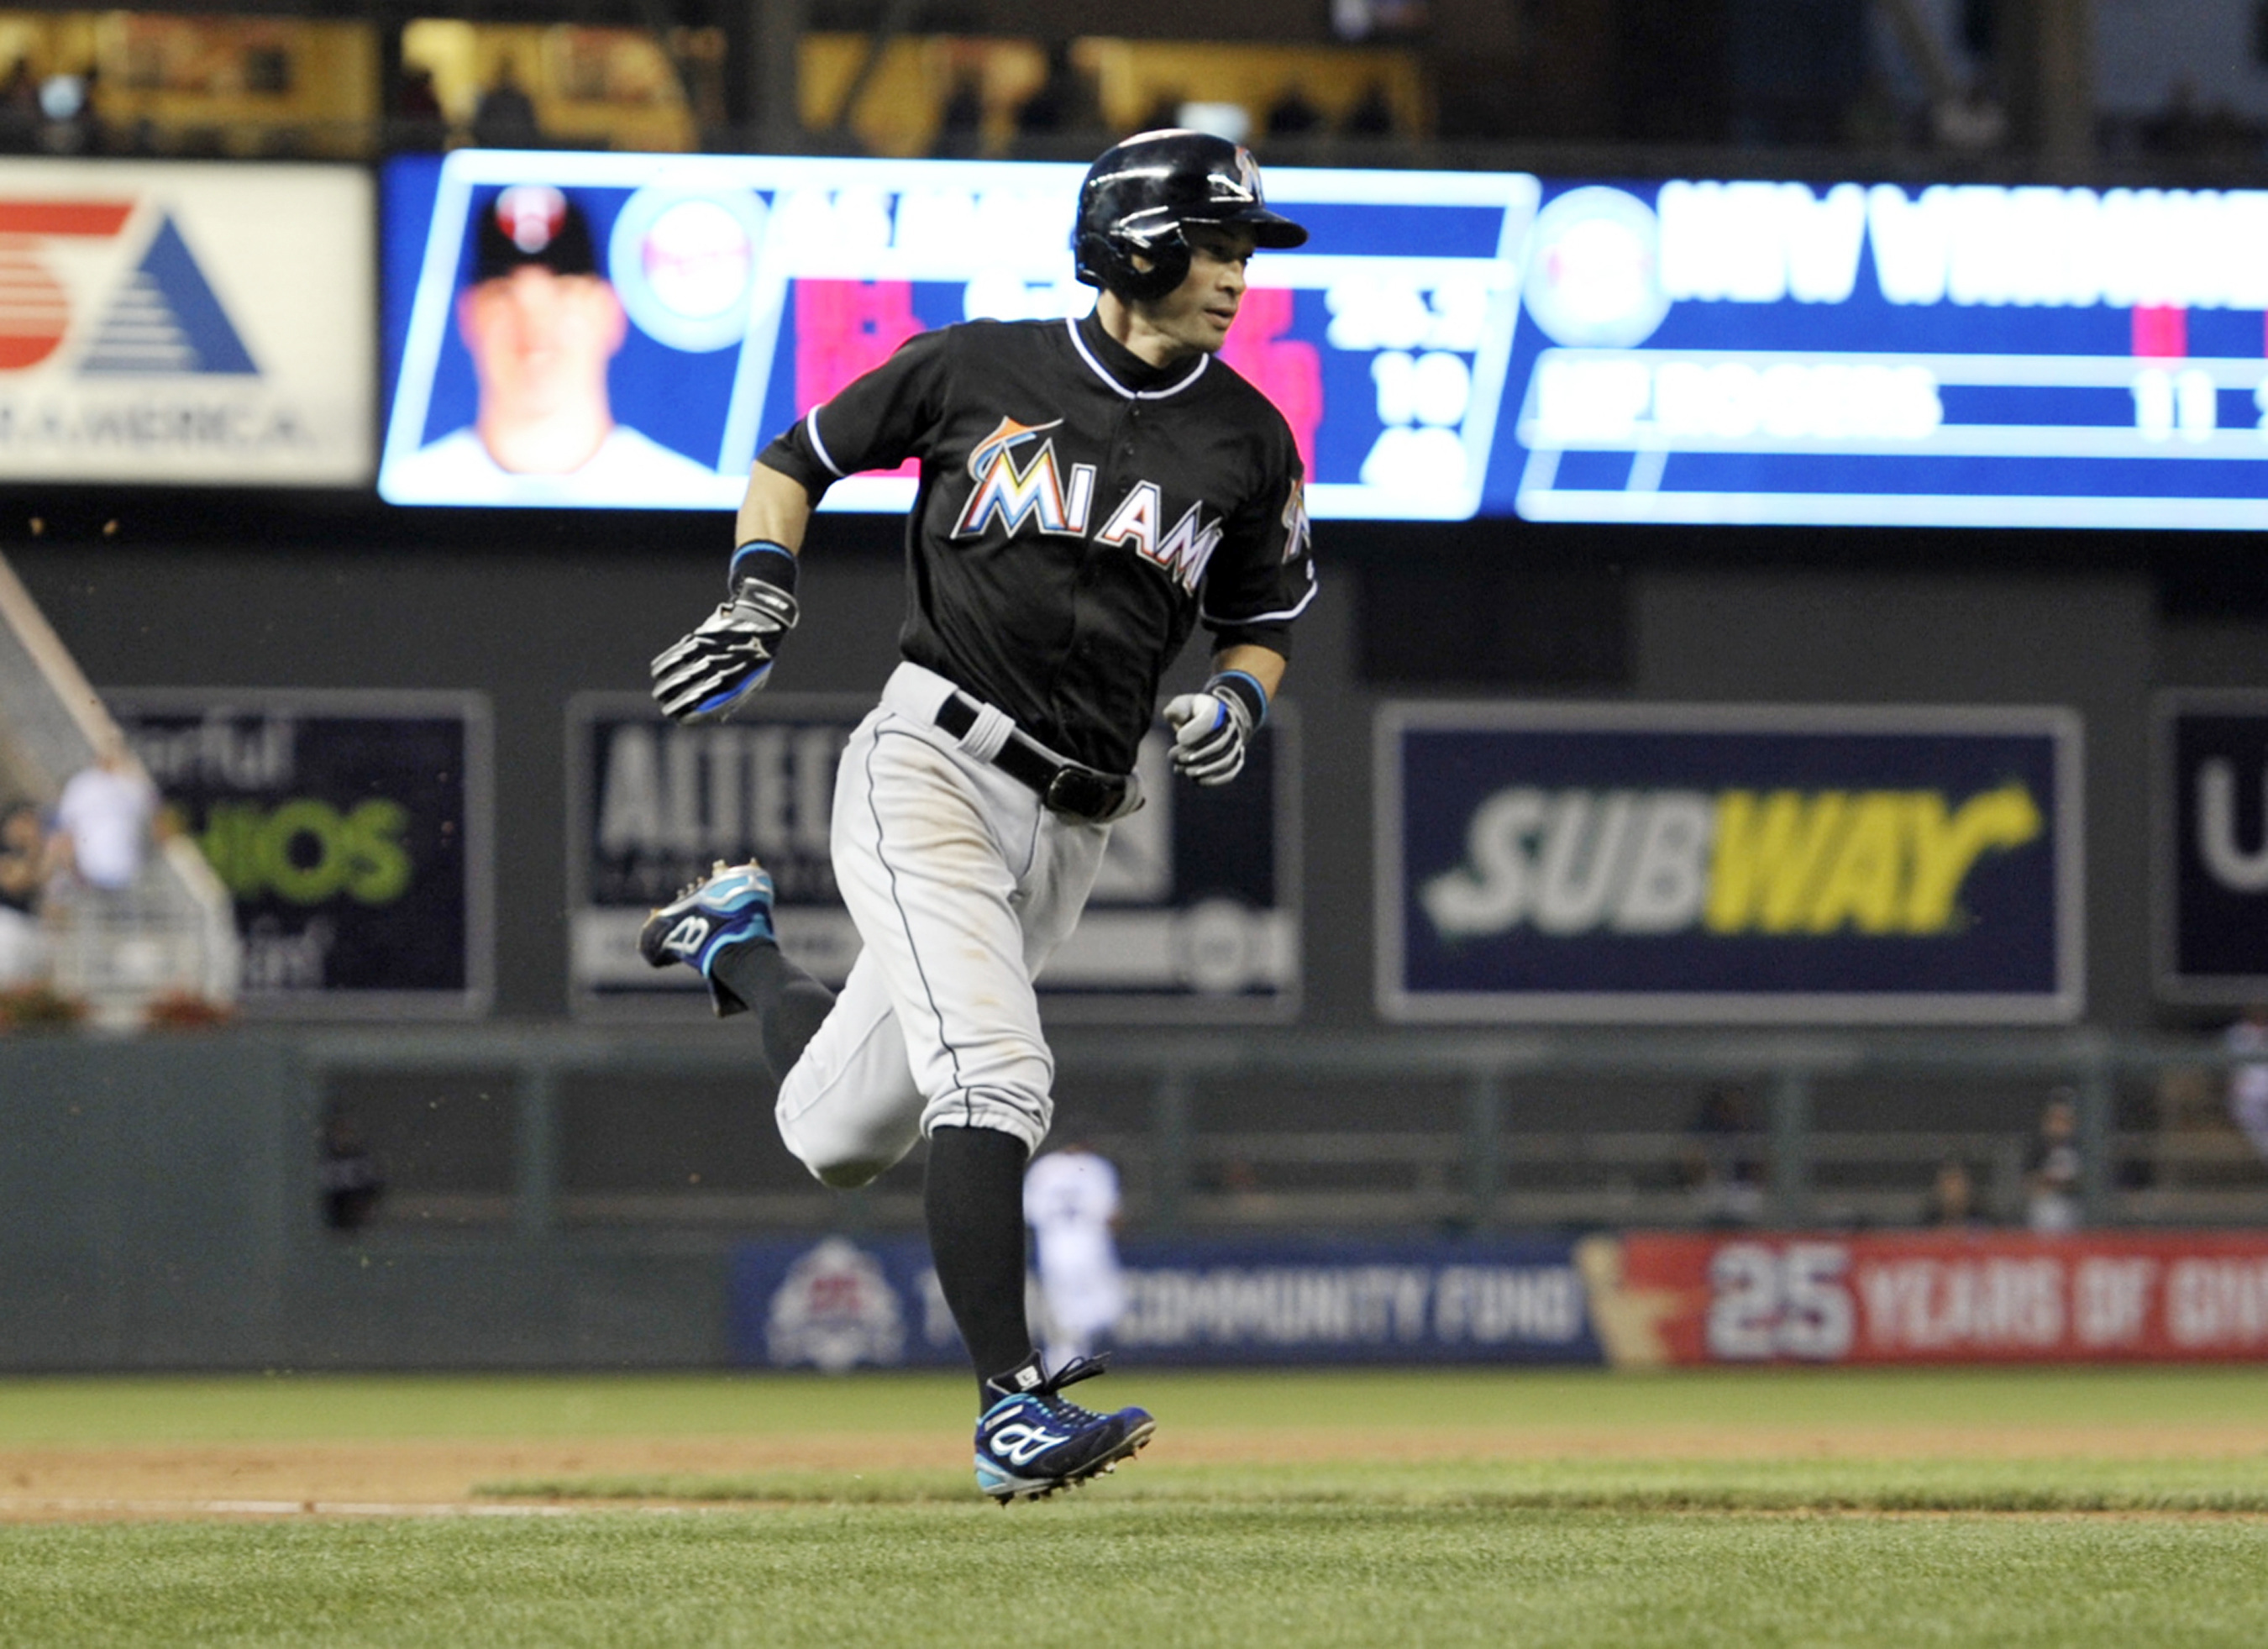 Miami Marlins' Ichiro Suzuki races home as he scores on a hit by Martin Prado off Minnesota Twins pitcher Trevor May during the seventh inning of a baseball game Thursday, June 9, 2016, in Minneapolis. (AP Photo/Jim Mone)